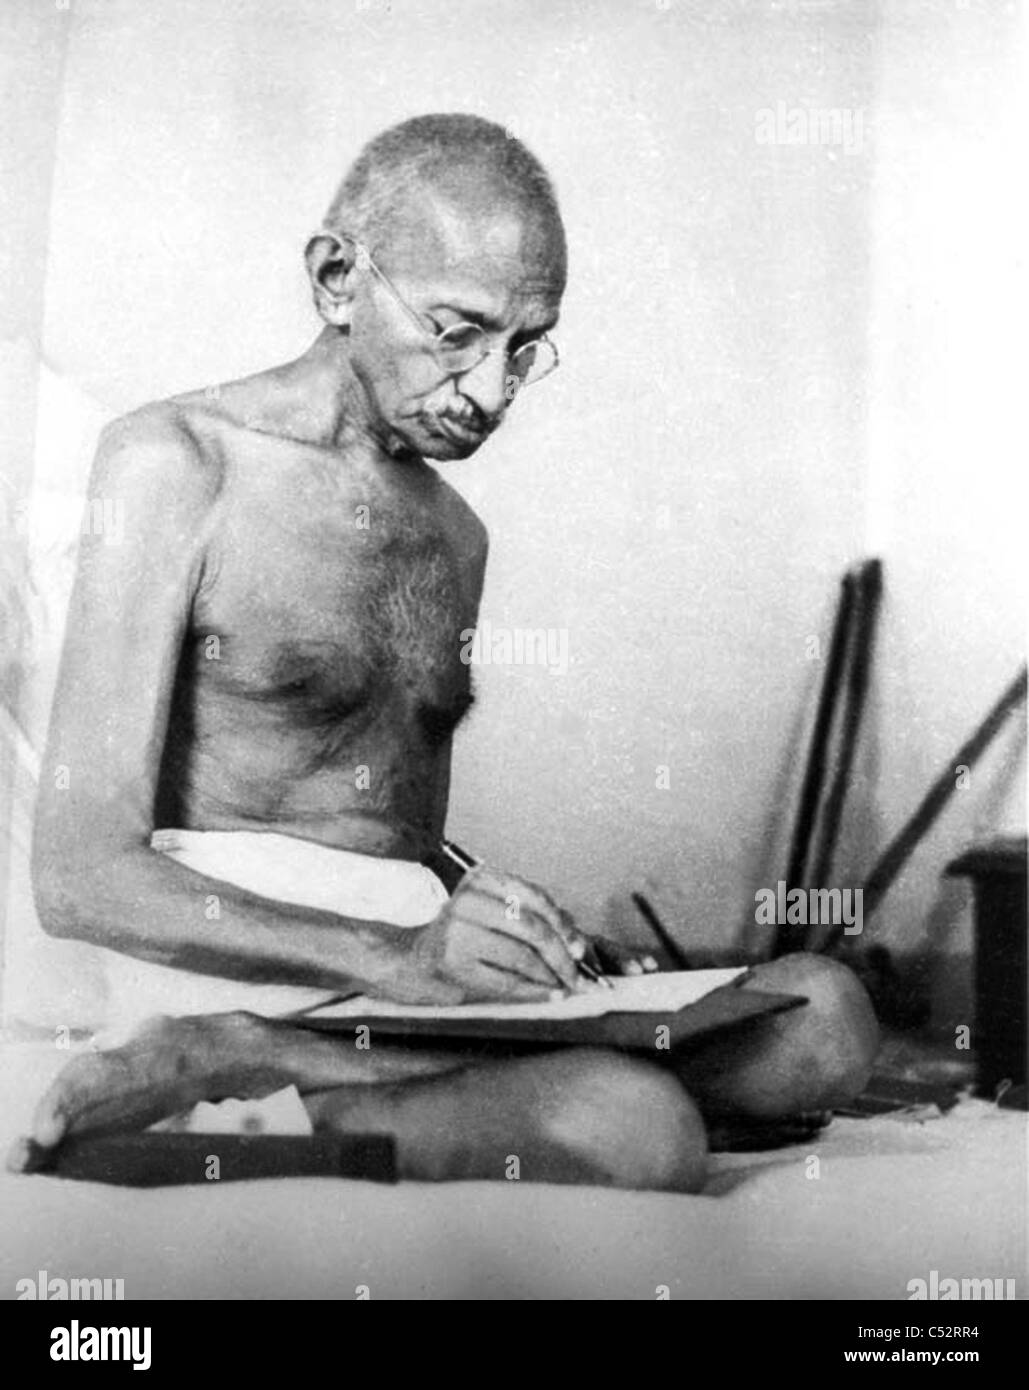 MOHENDRAS GANDHI (1869-1948) Indian political and ideological leader in August 1942 - Stock Image